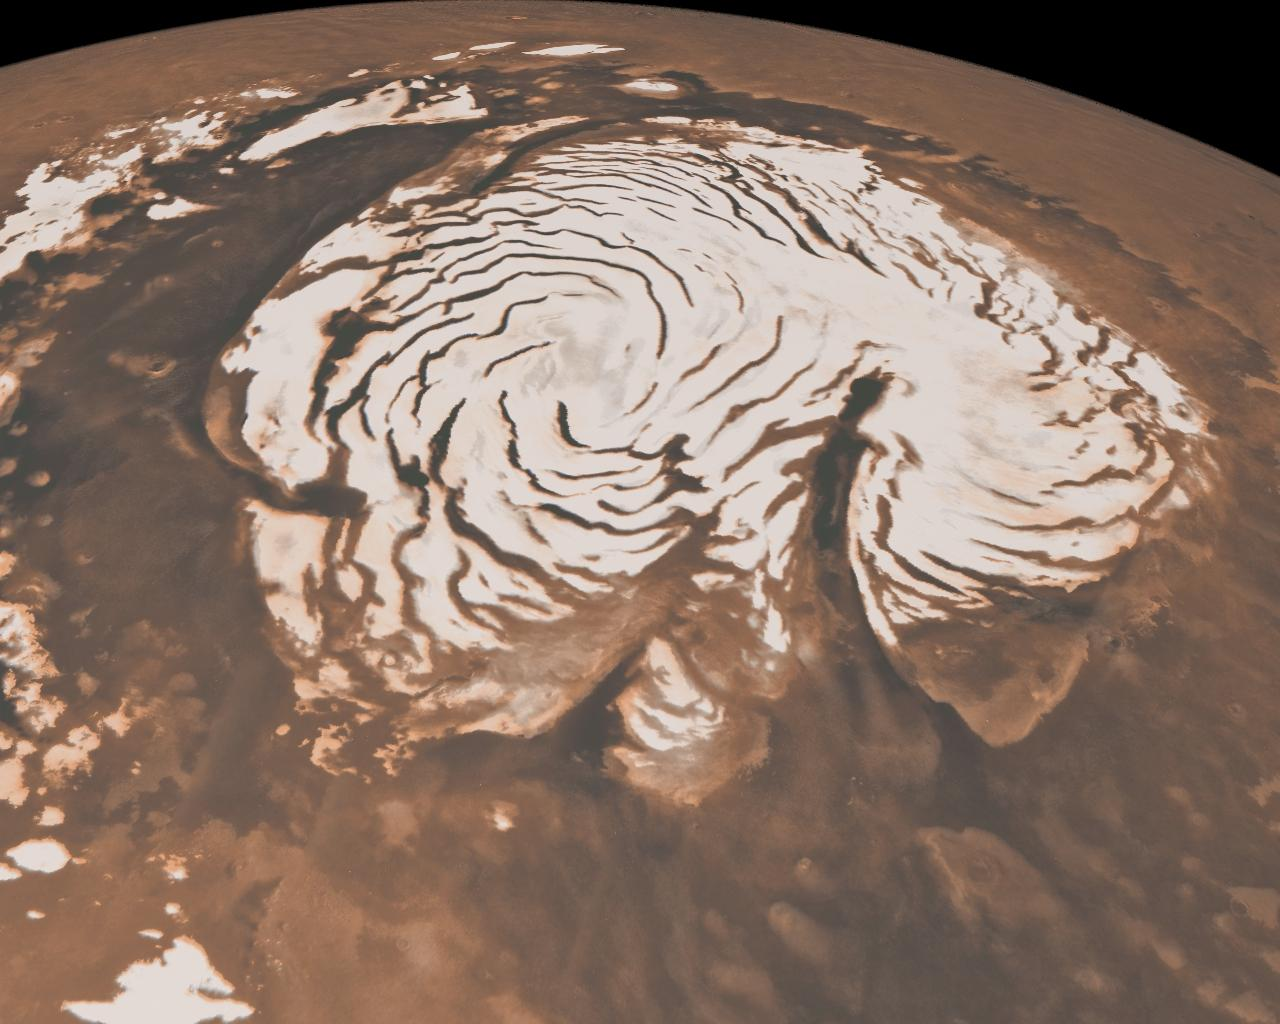 north polar region of Mars